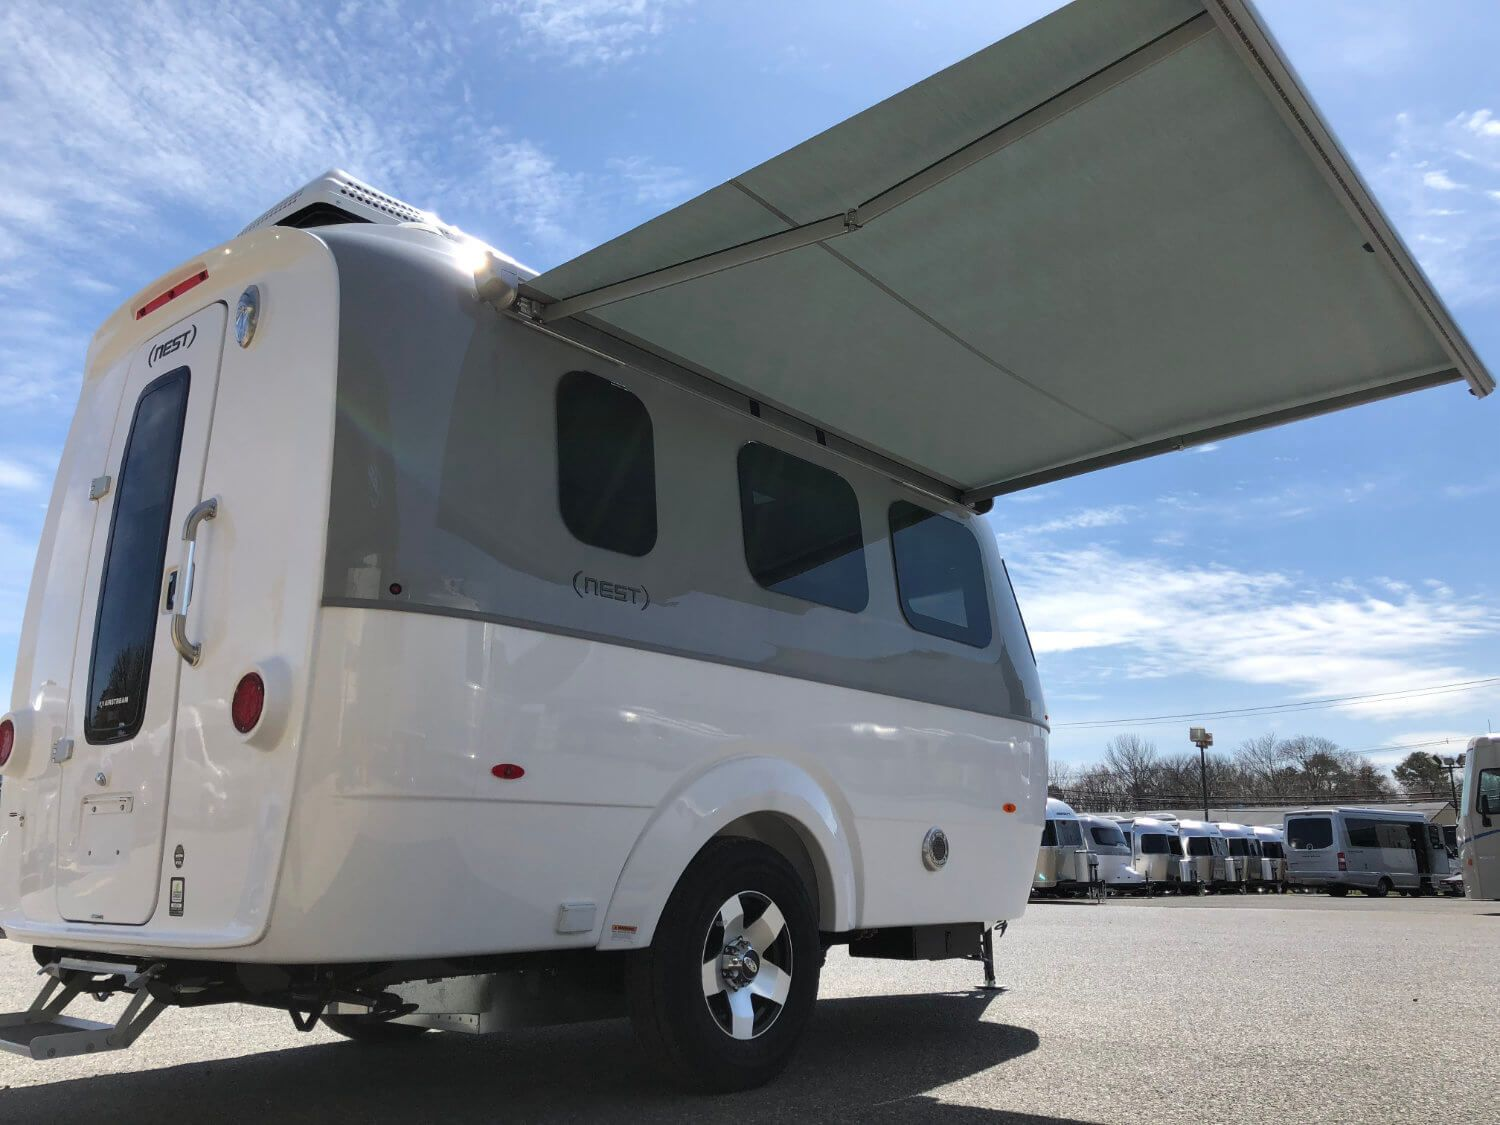 The Airstream Nest Has An Electric Powered Awning That Comes